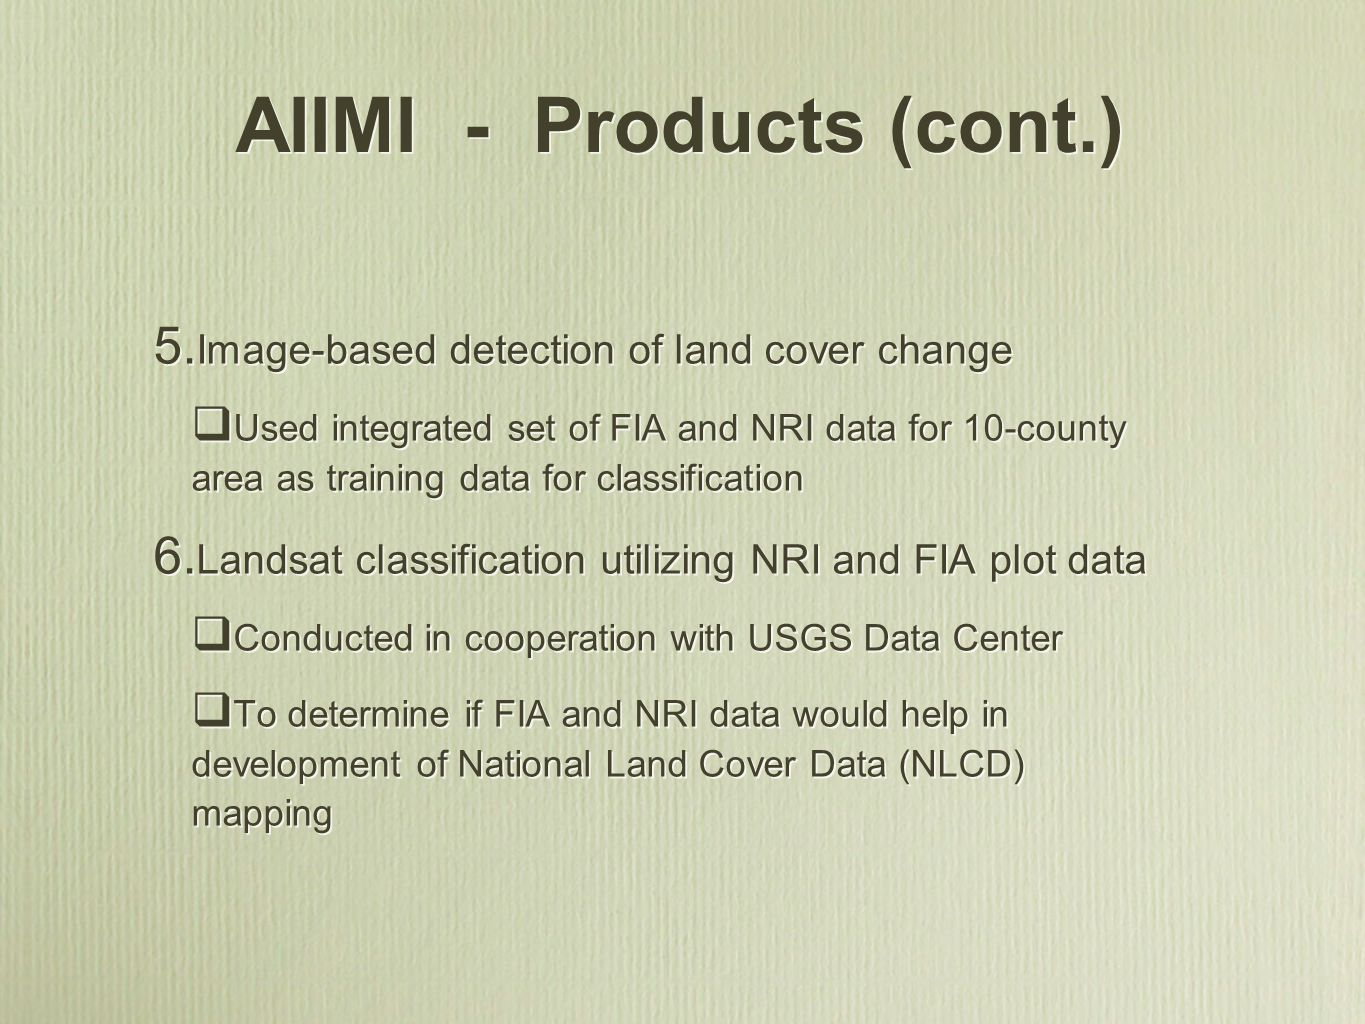 AIIMI - Products (cont.) 5. Image-based detection of land cover change Used integrated set of FIA and NRI data for 10-county area as training data for